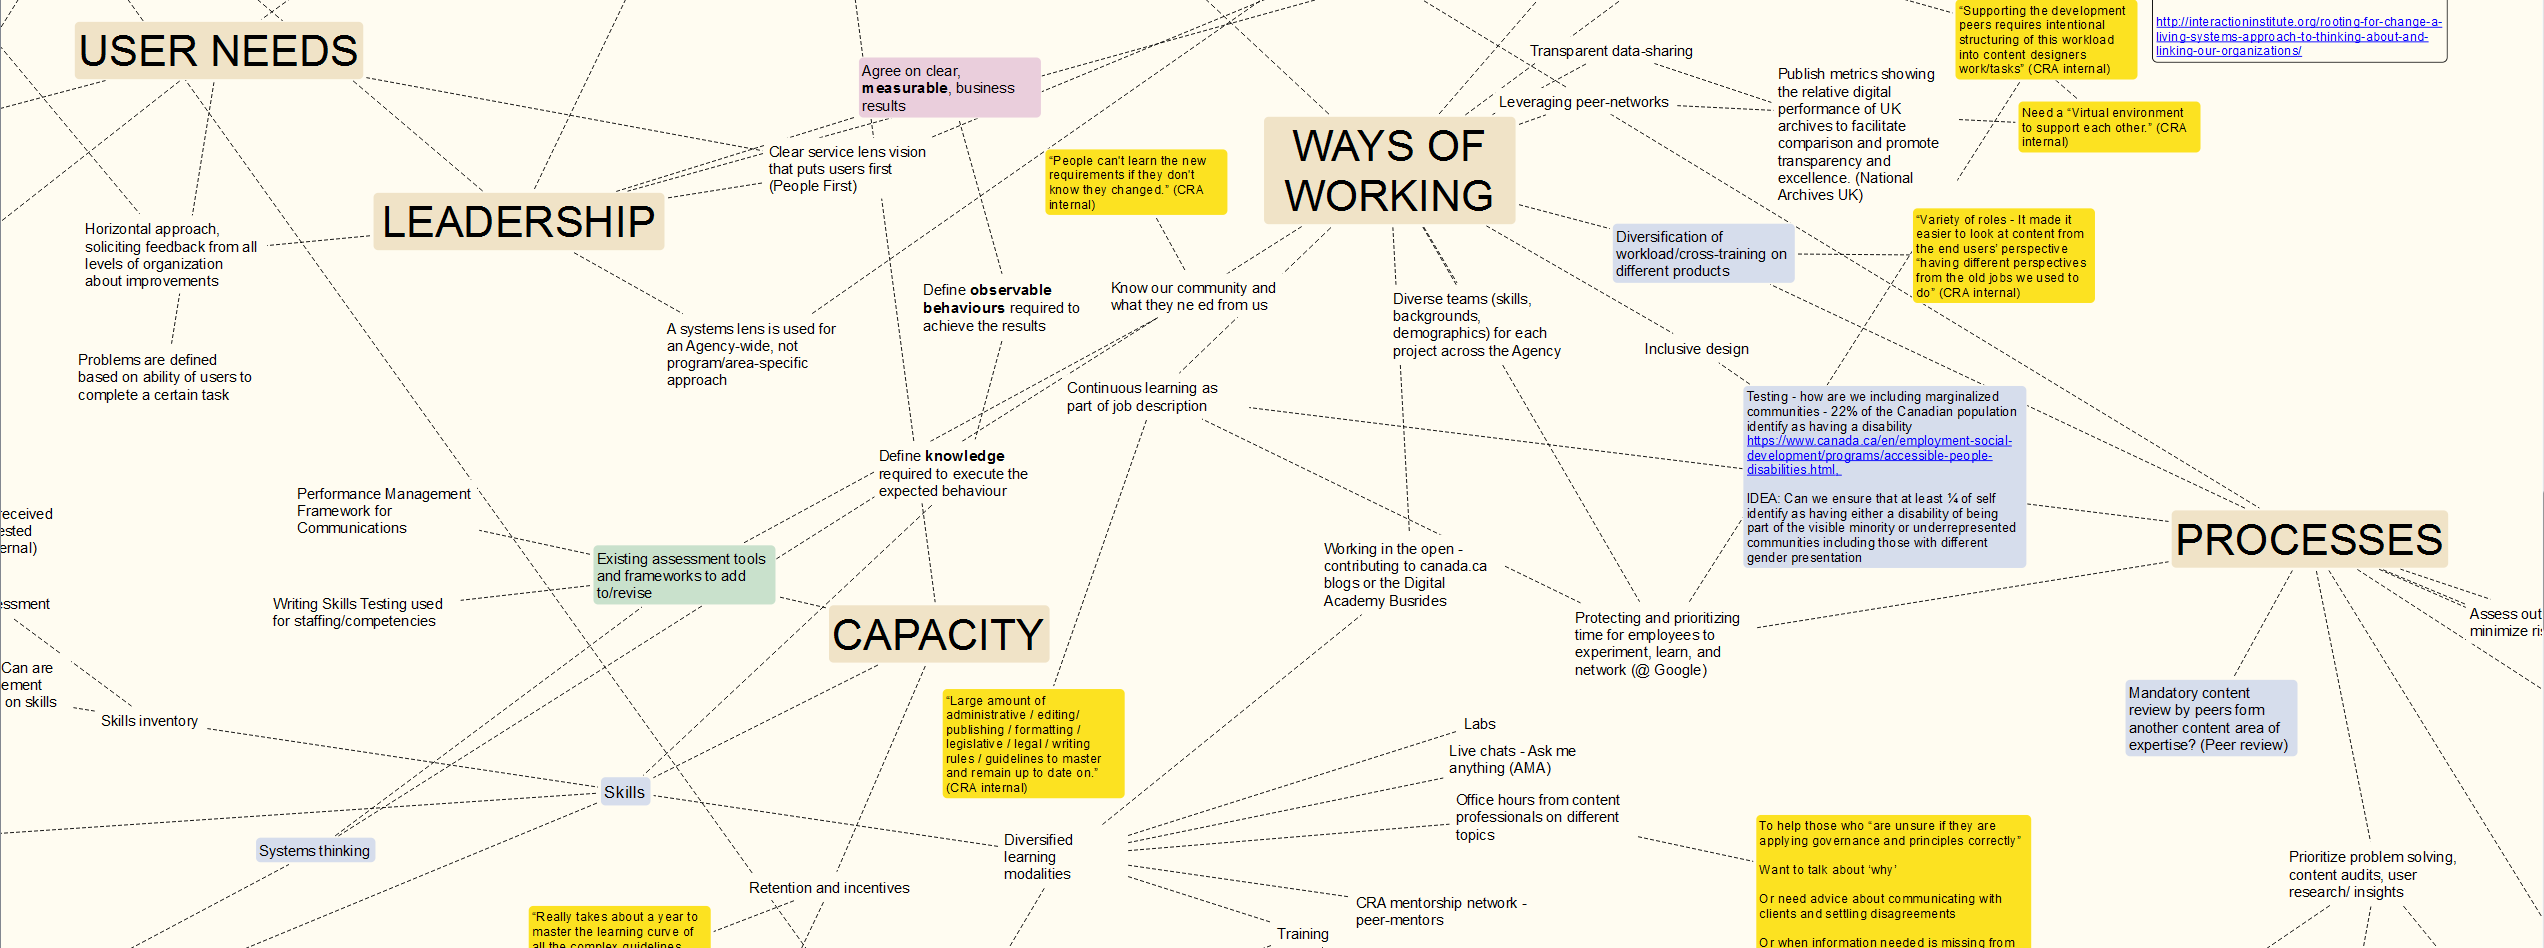 A close up view of the 'content quality' ecosystem map.